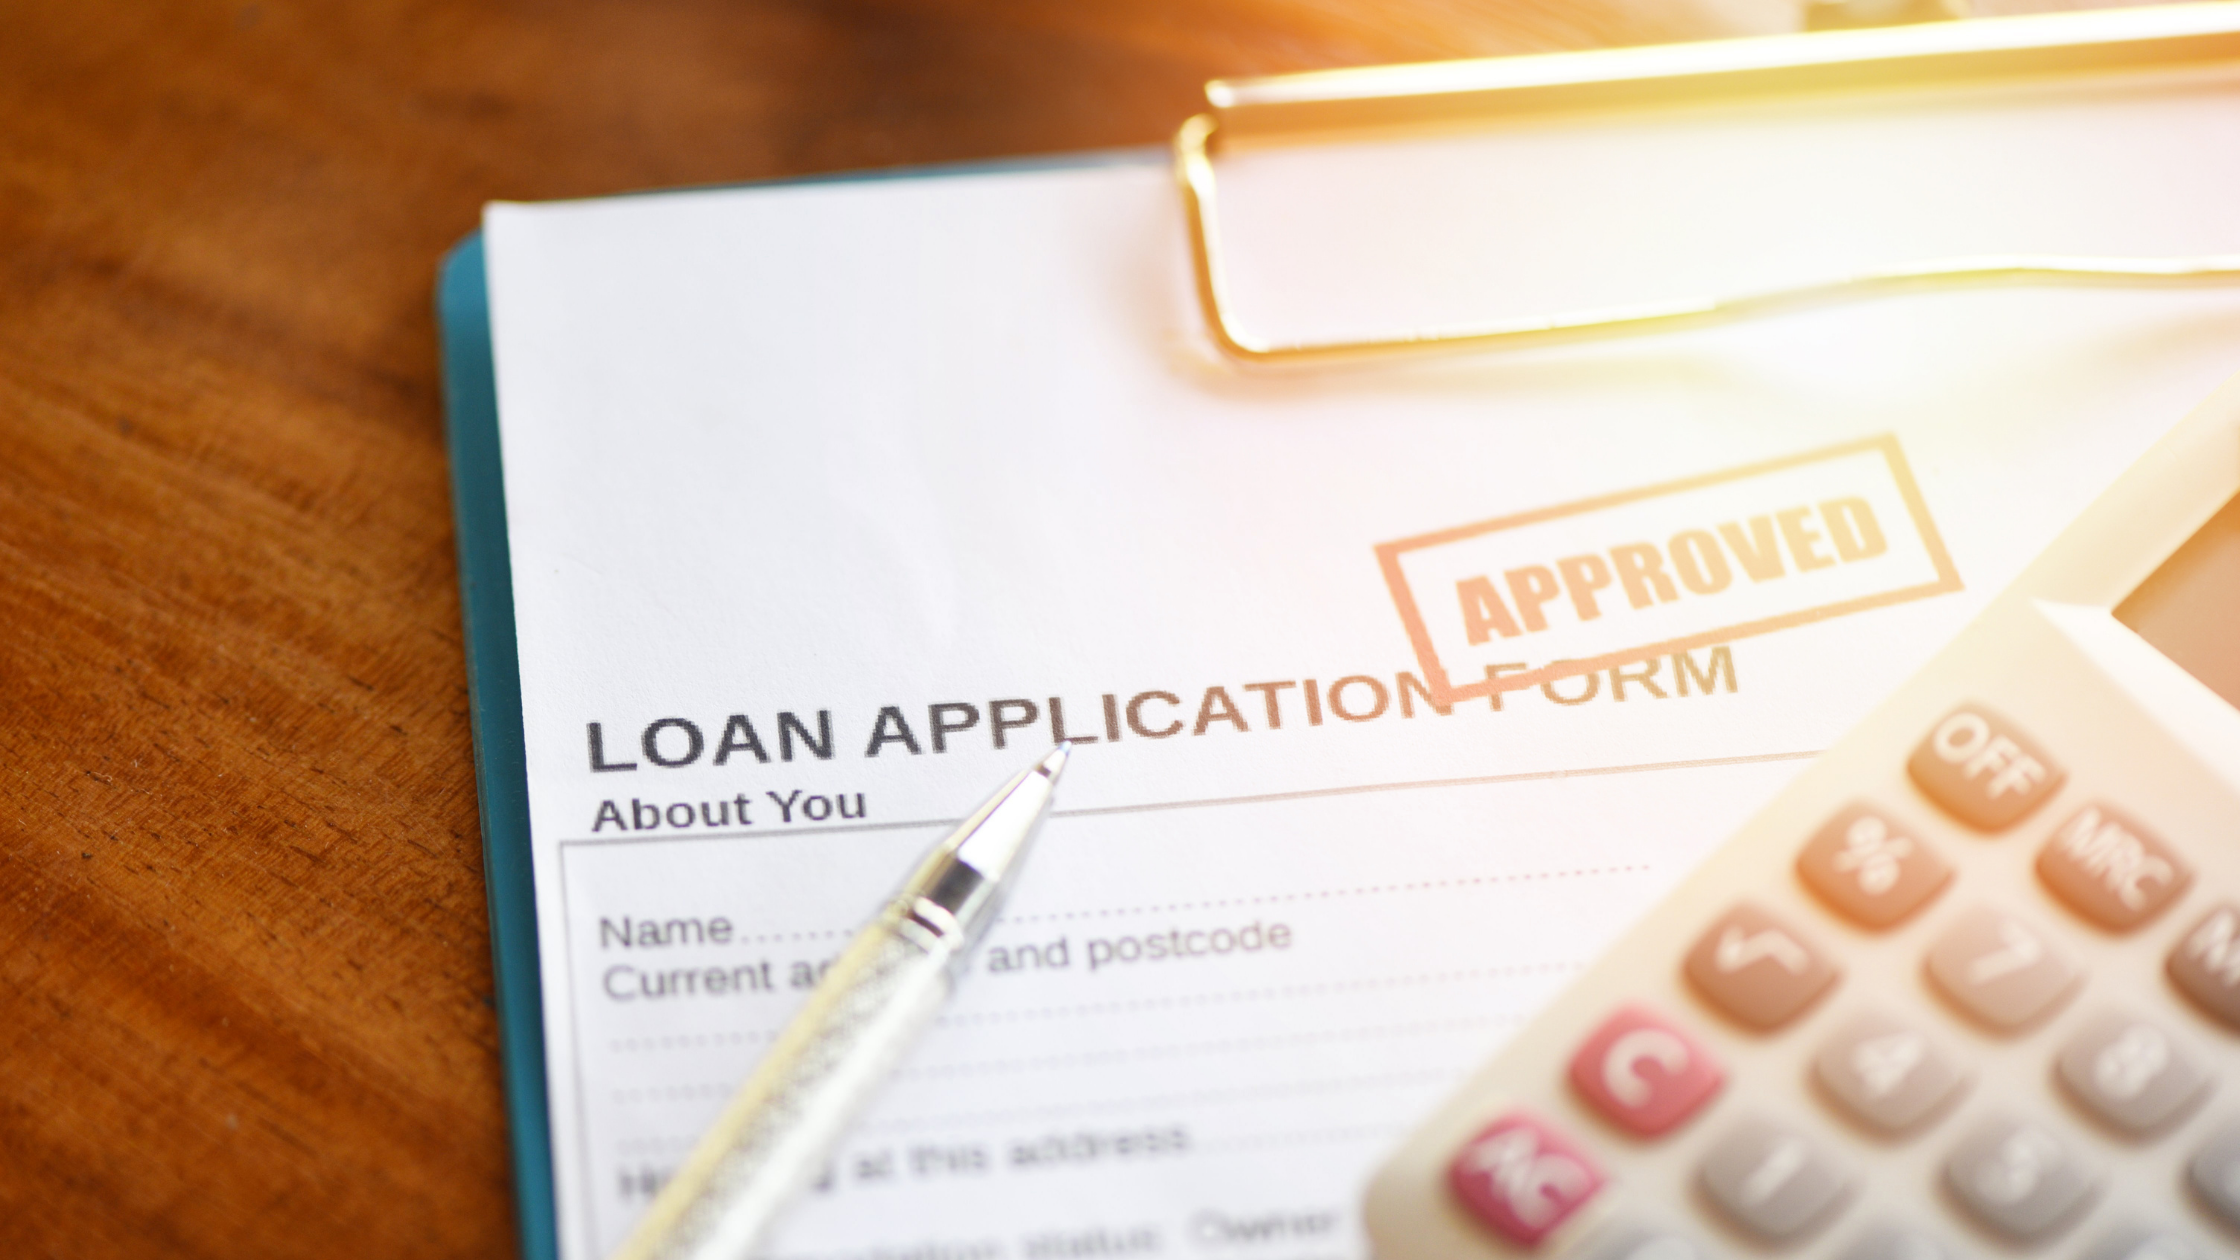 Image of loan application form with a pen and a calculator.